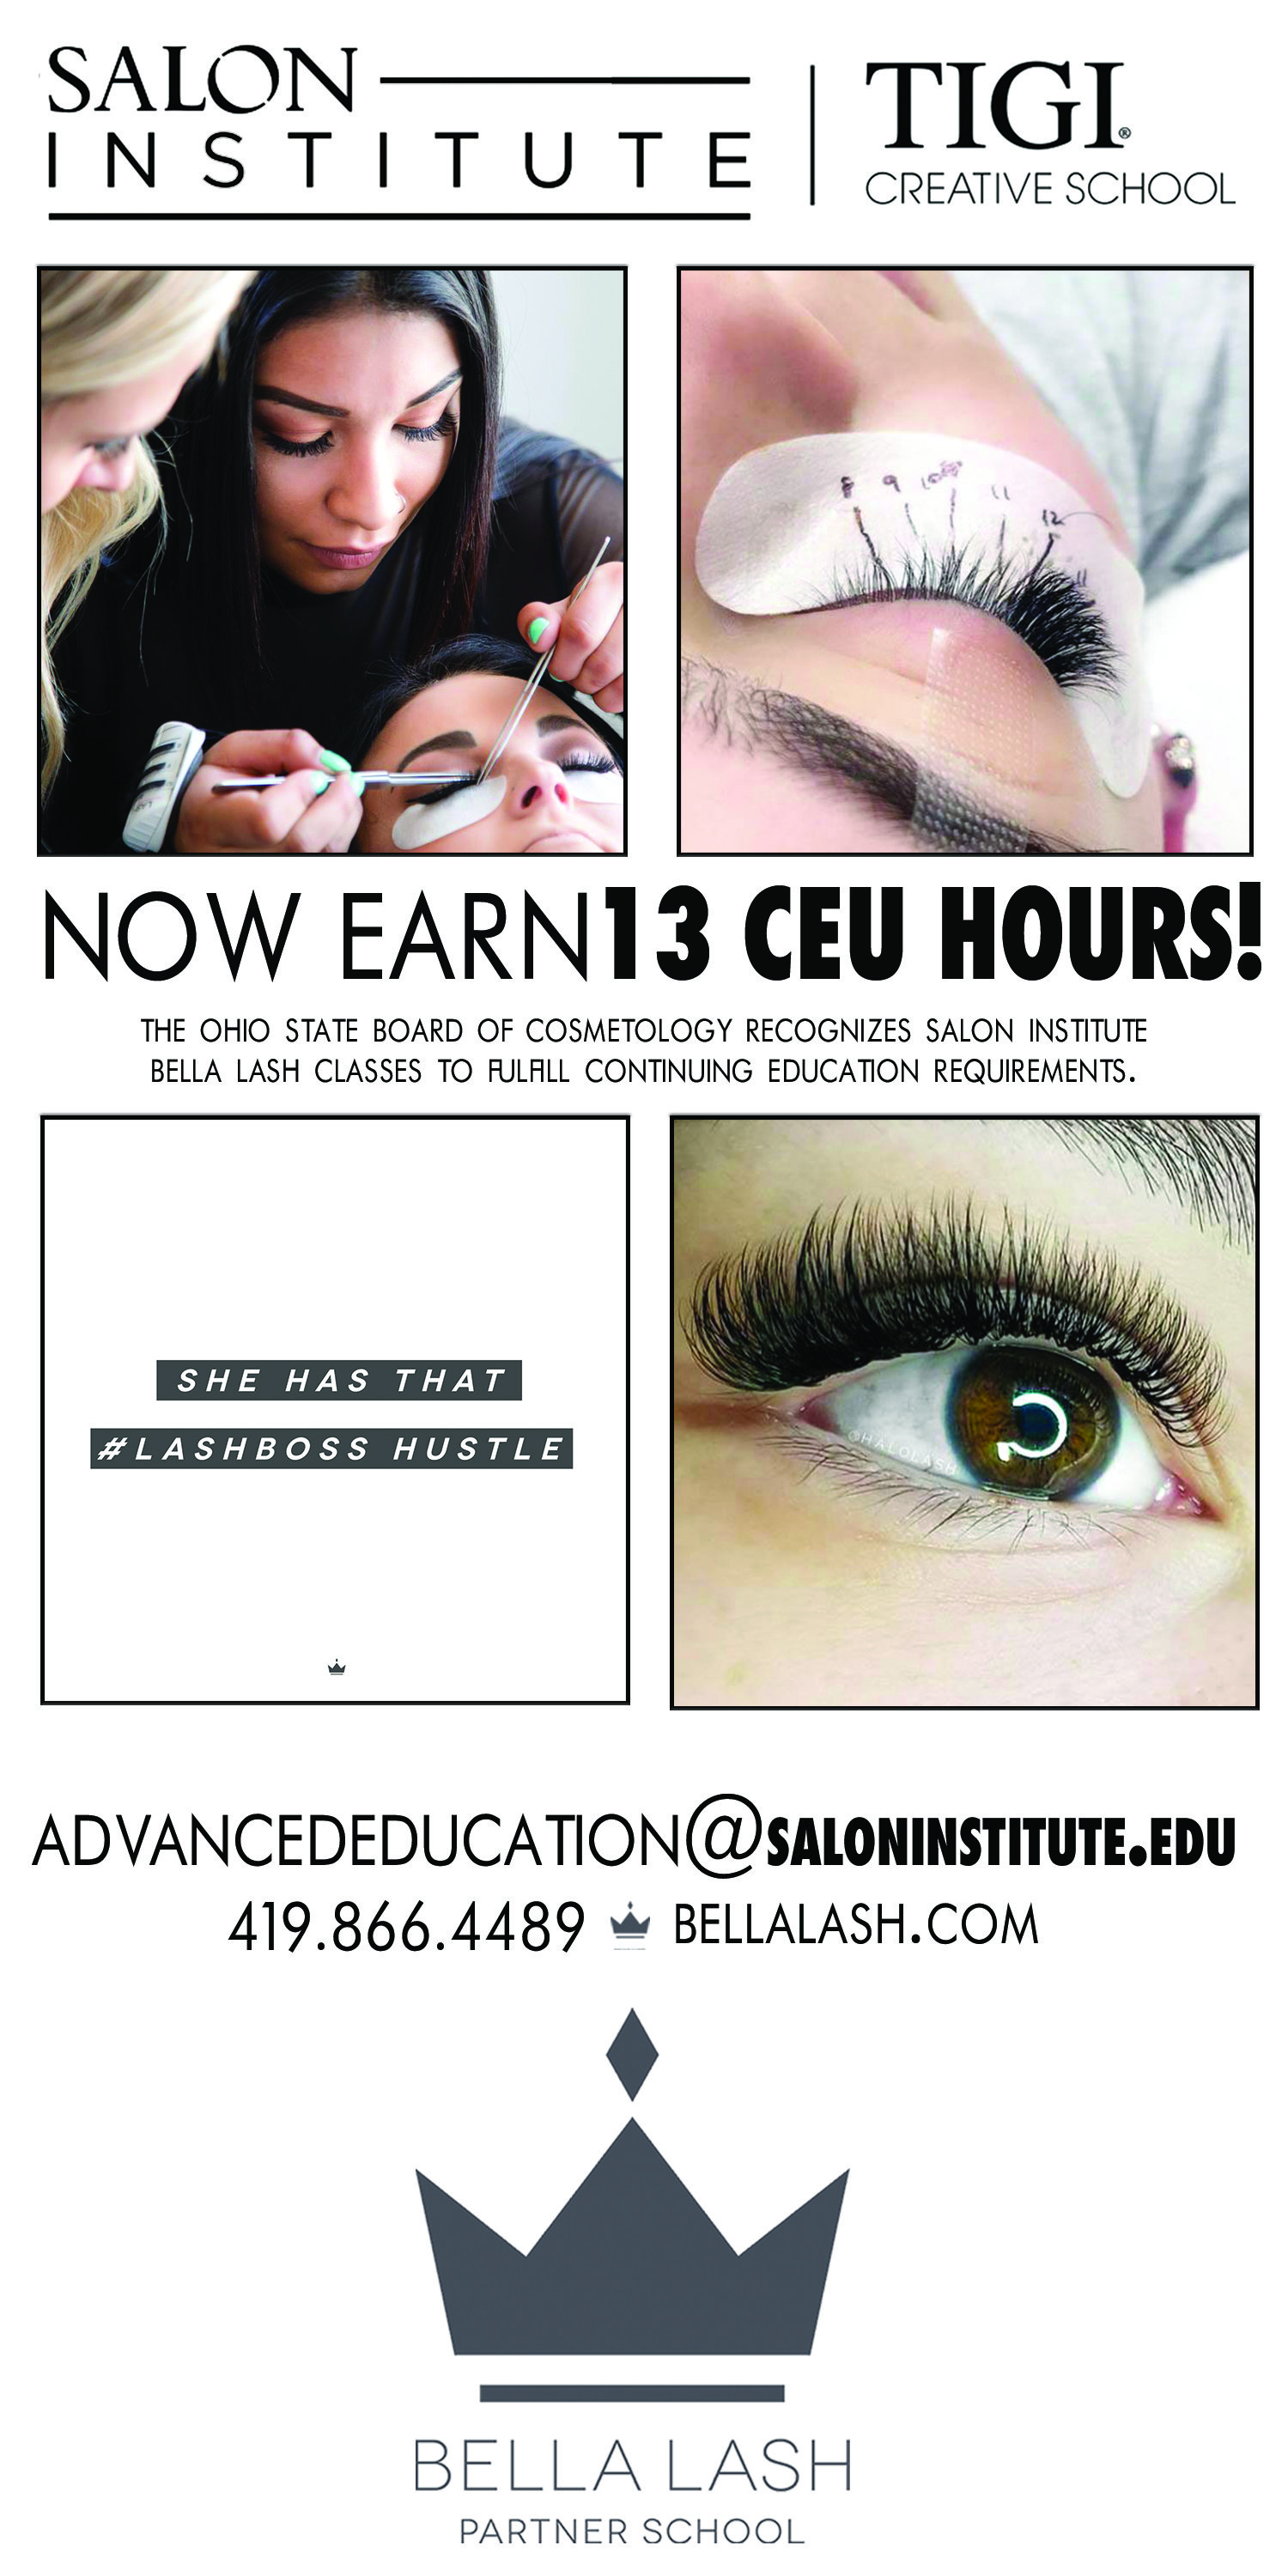 d4e8f7b902c The Ohio State Board of Cosmetology now awards 13 CEU hours for the Salon  Institute's 2-day Bella Lash certification workshop.